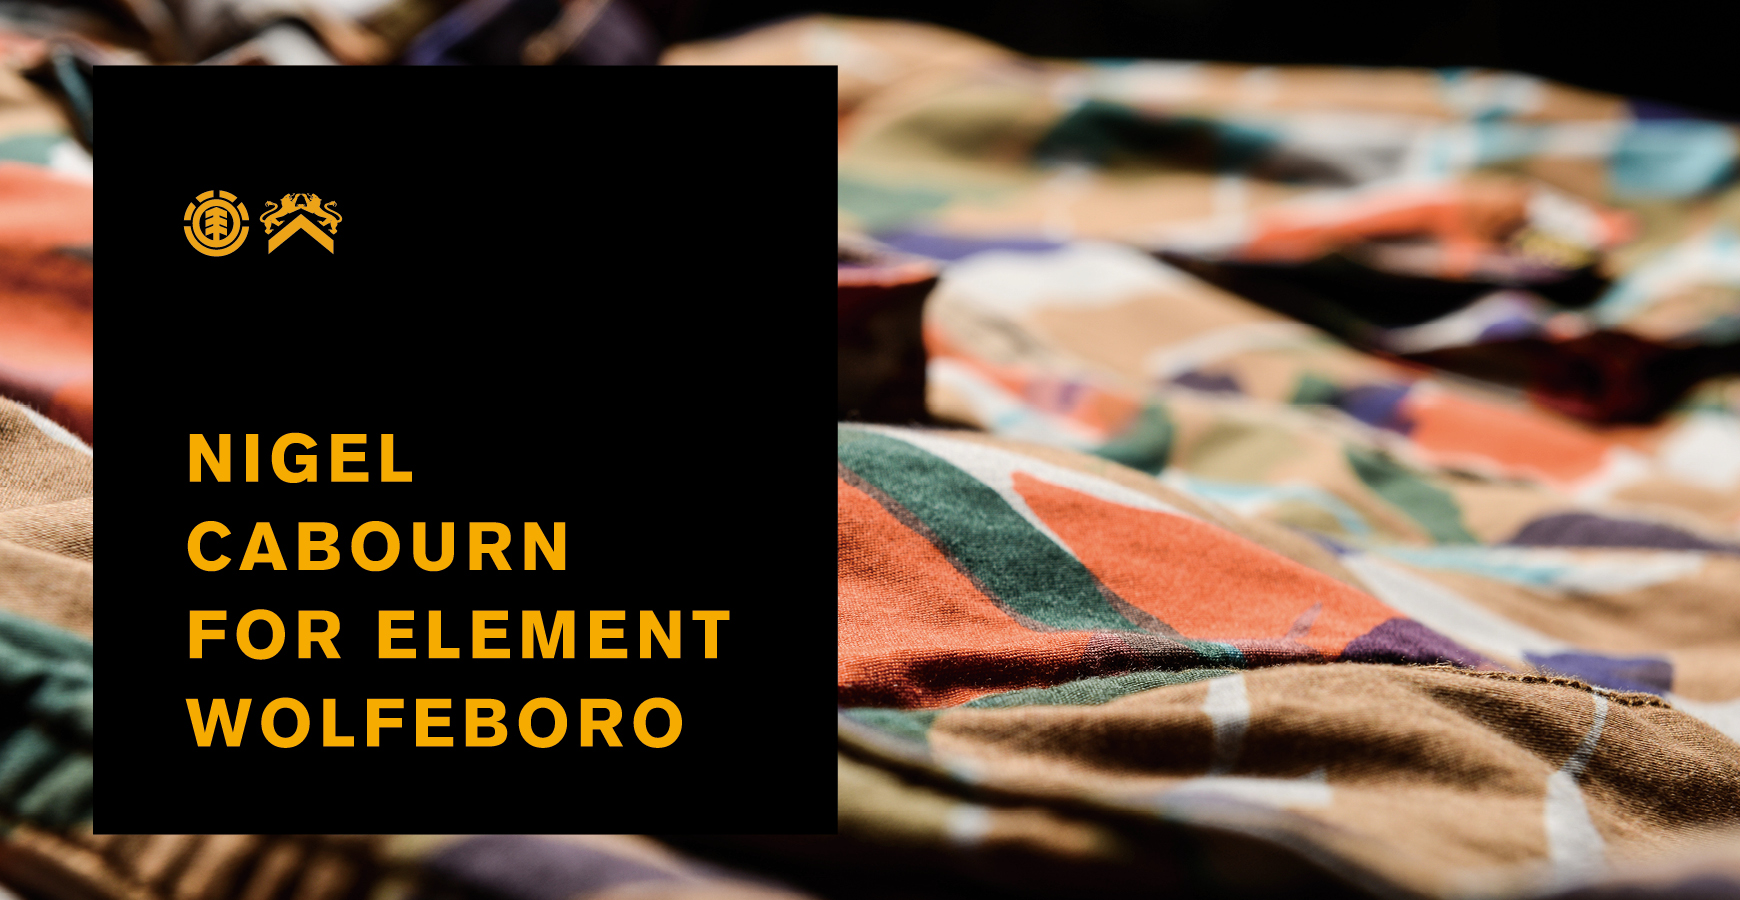 NIGEL CABOURN FOR ELEMENT WOLFEBORO